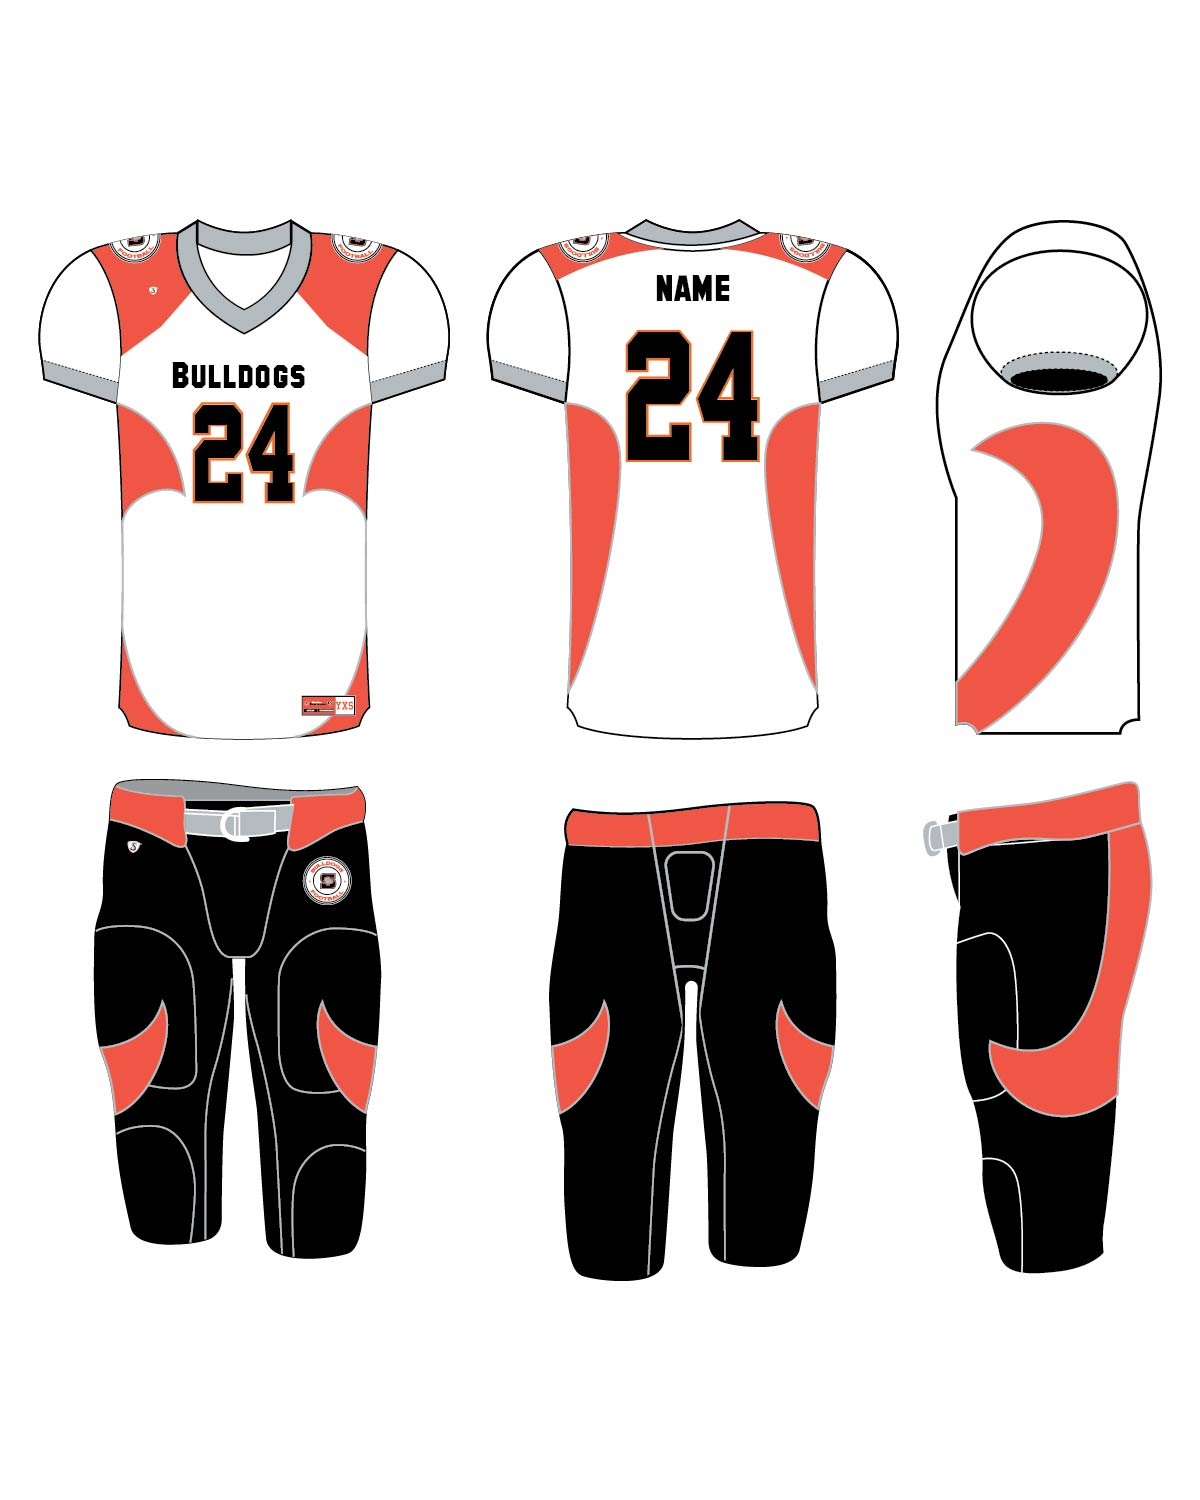 Custom Sublimated Football Uniform - Bulldogs 2